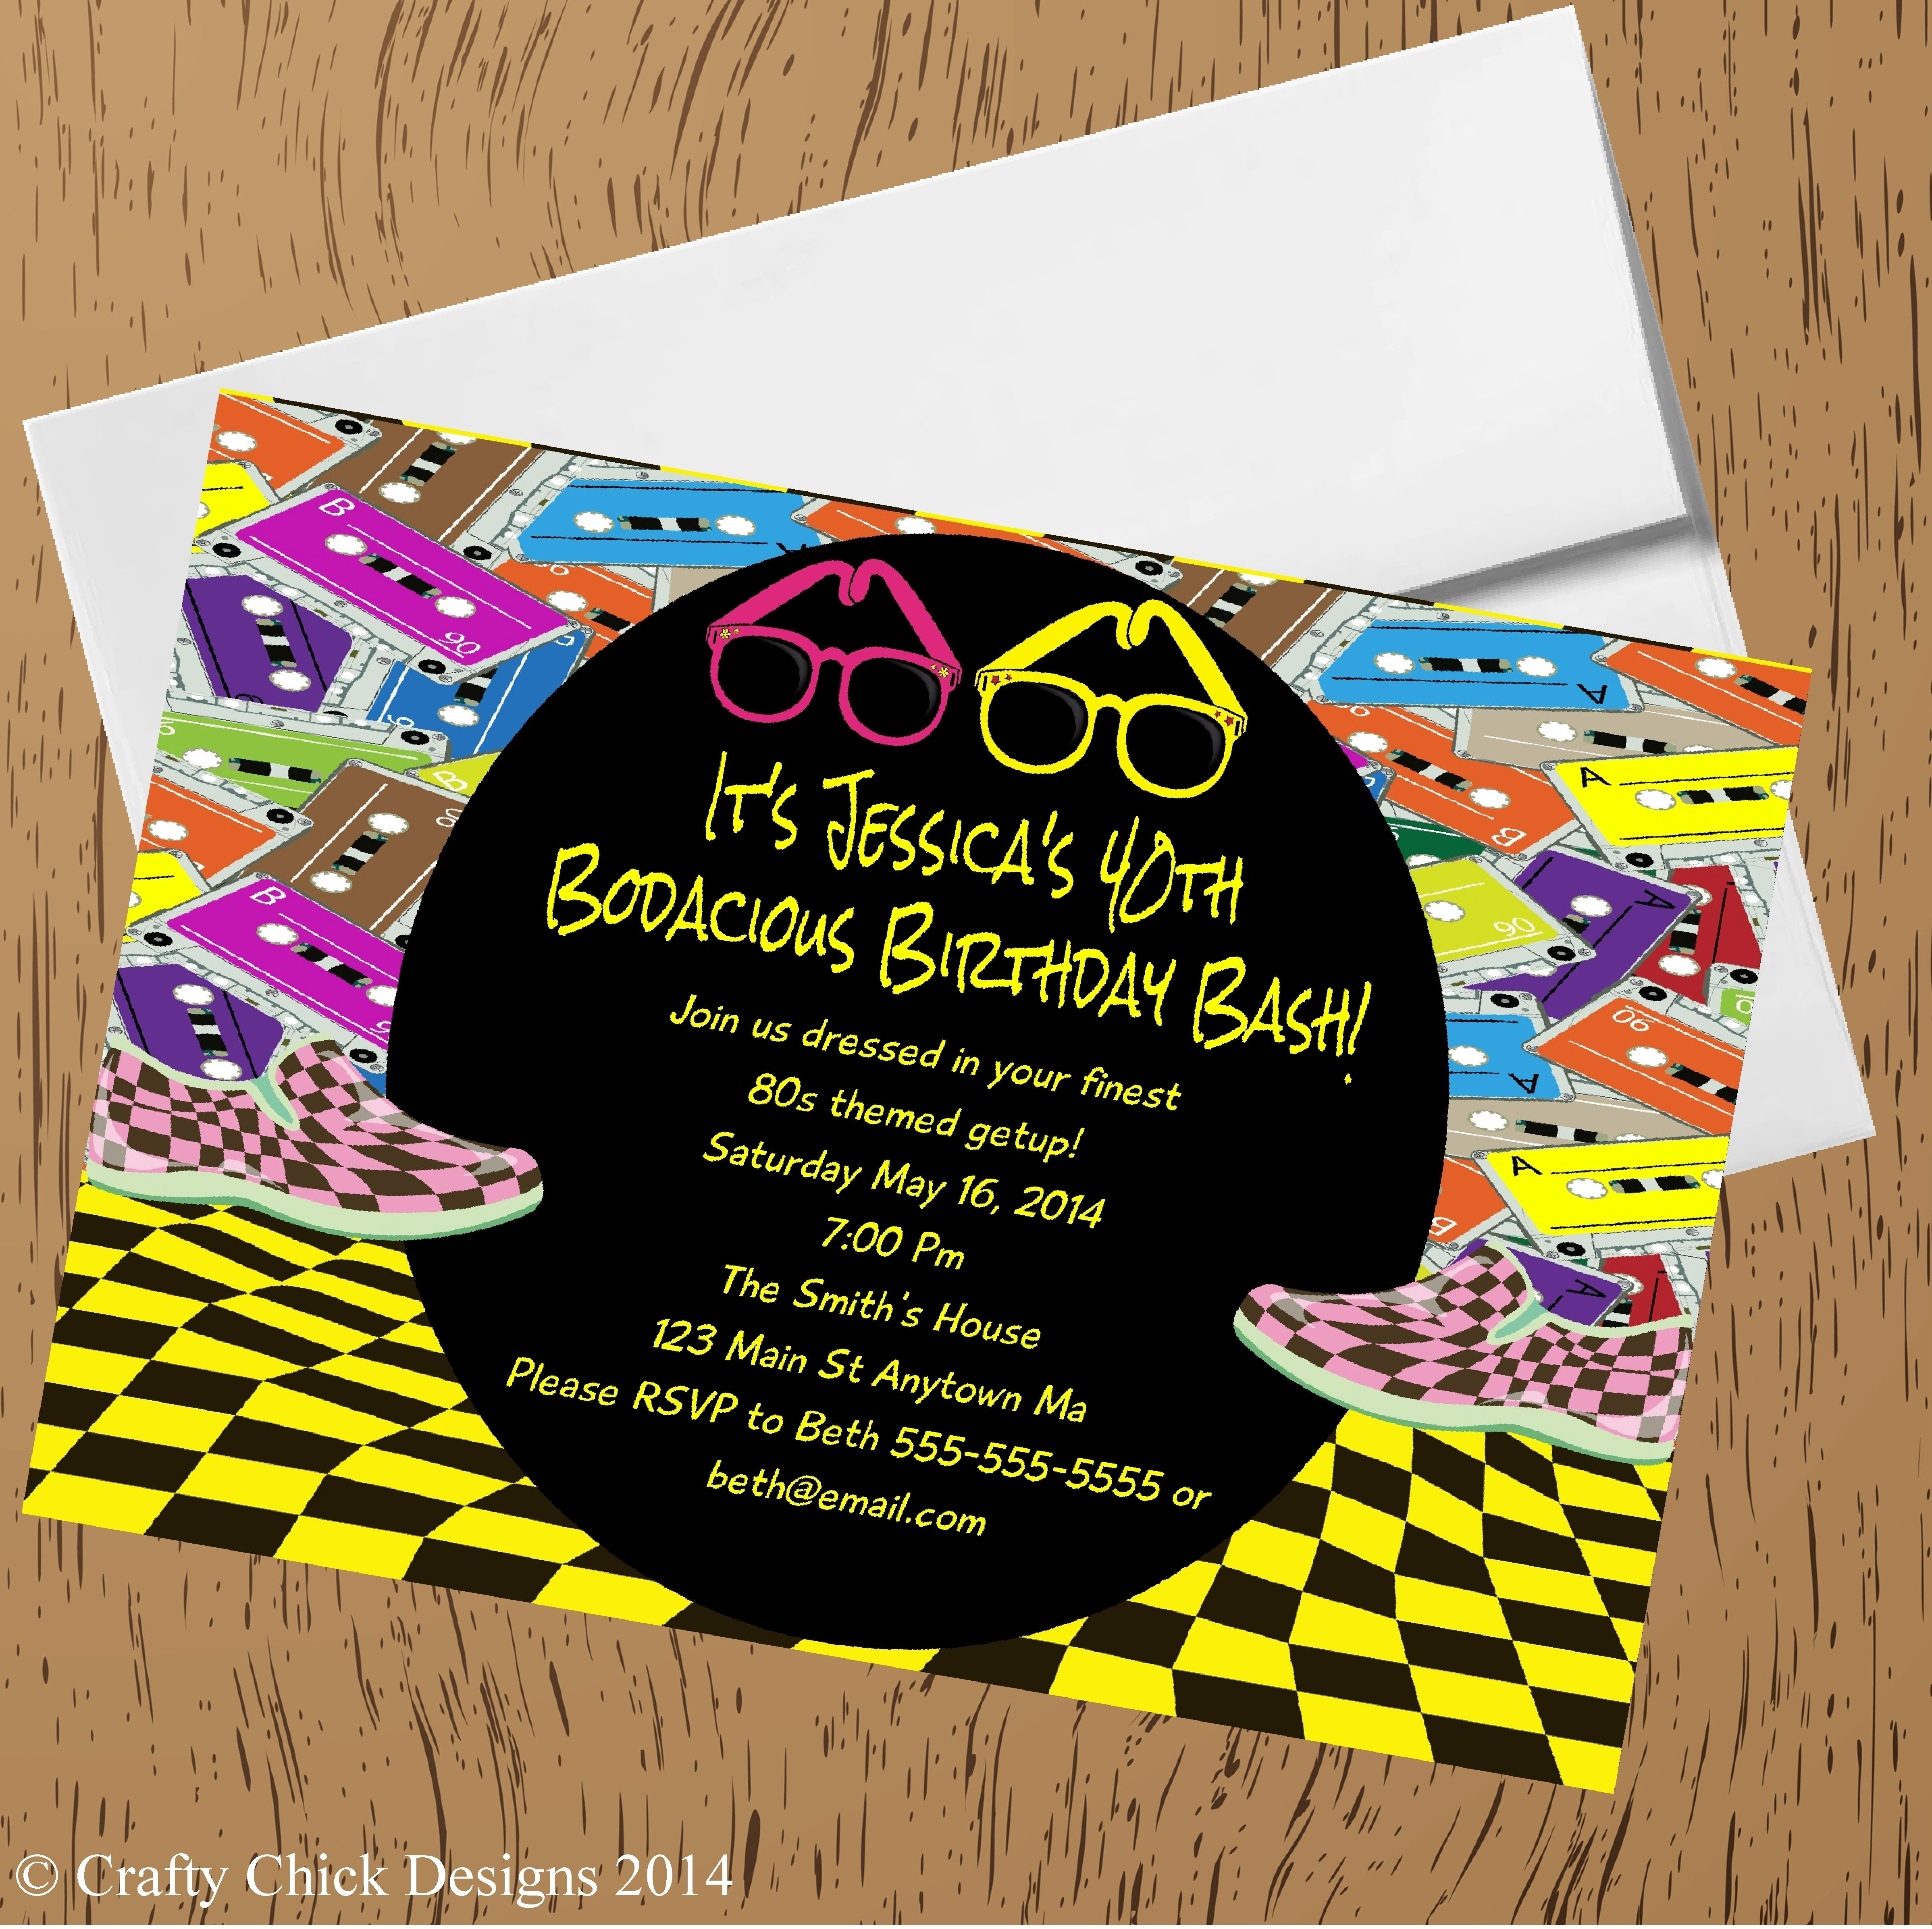 1980s Bodacious Birthday Party Invitations   Crafty Chick Designs ...